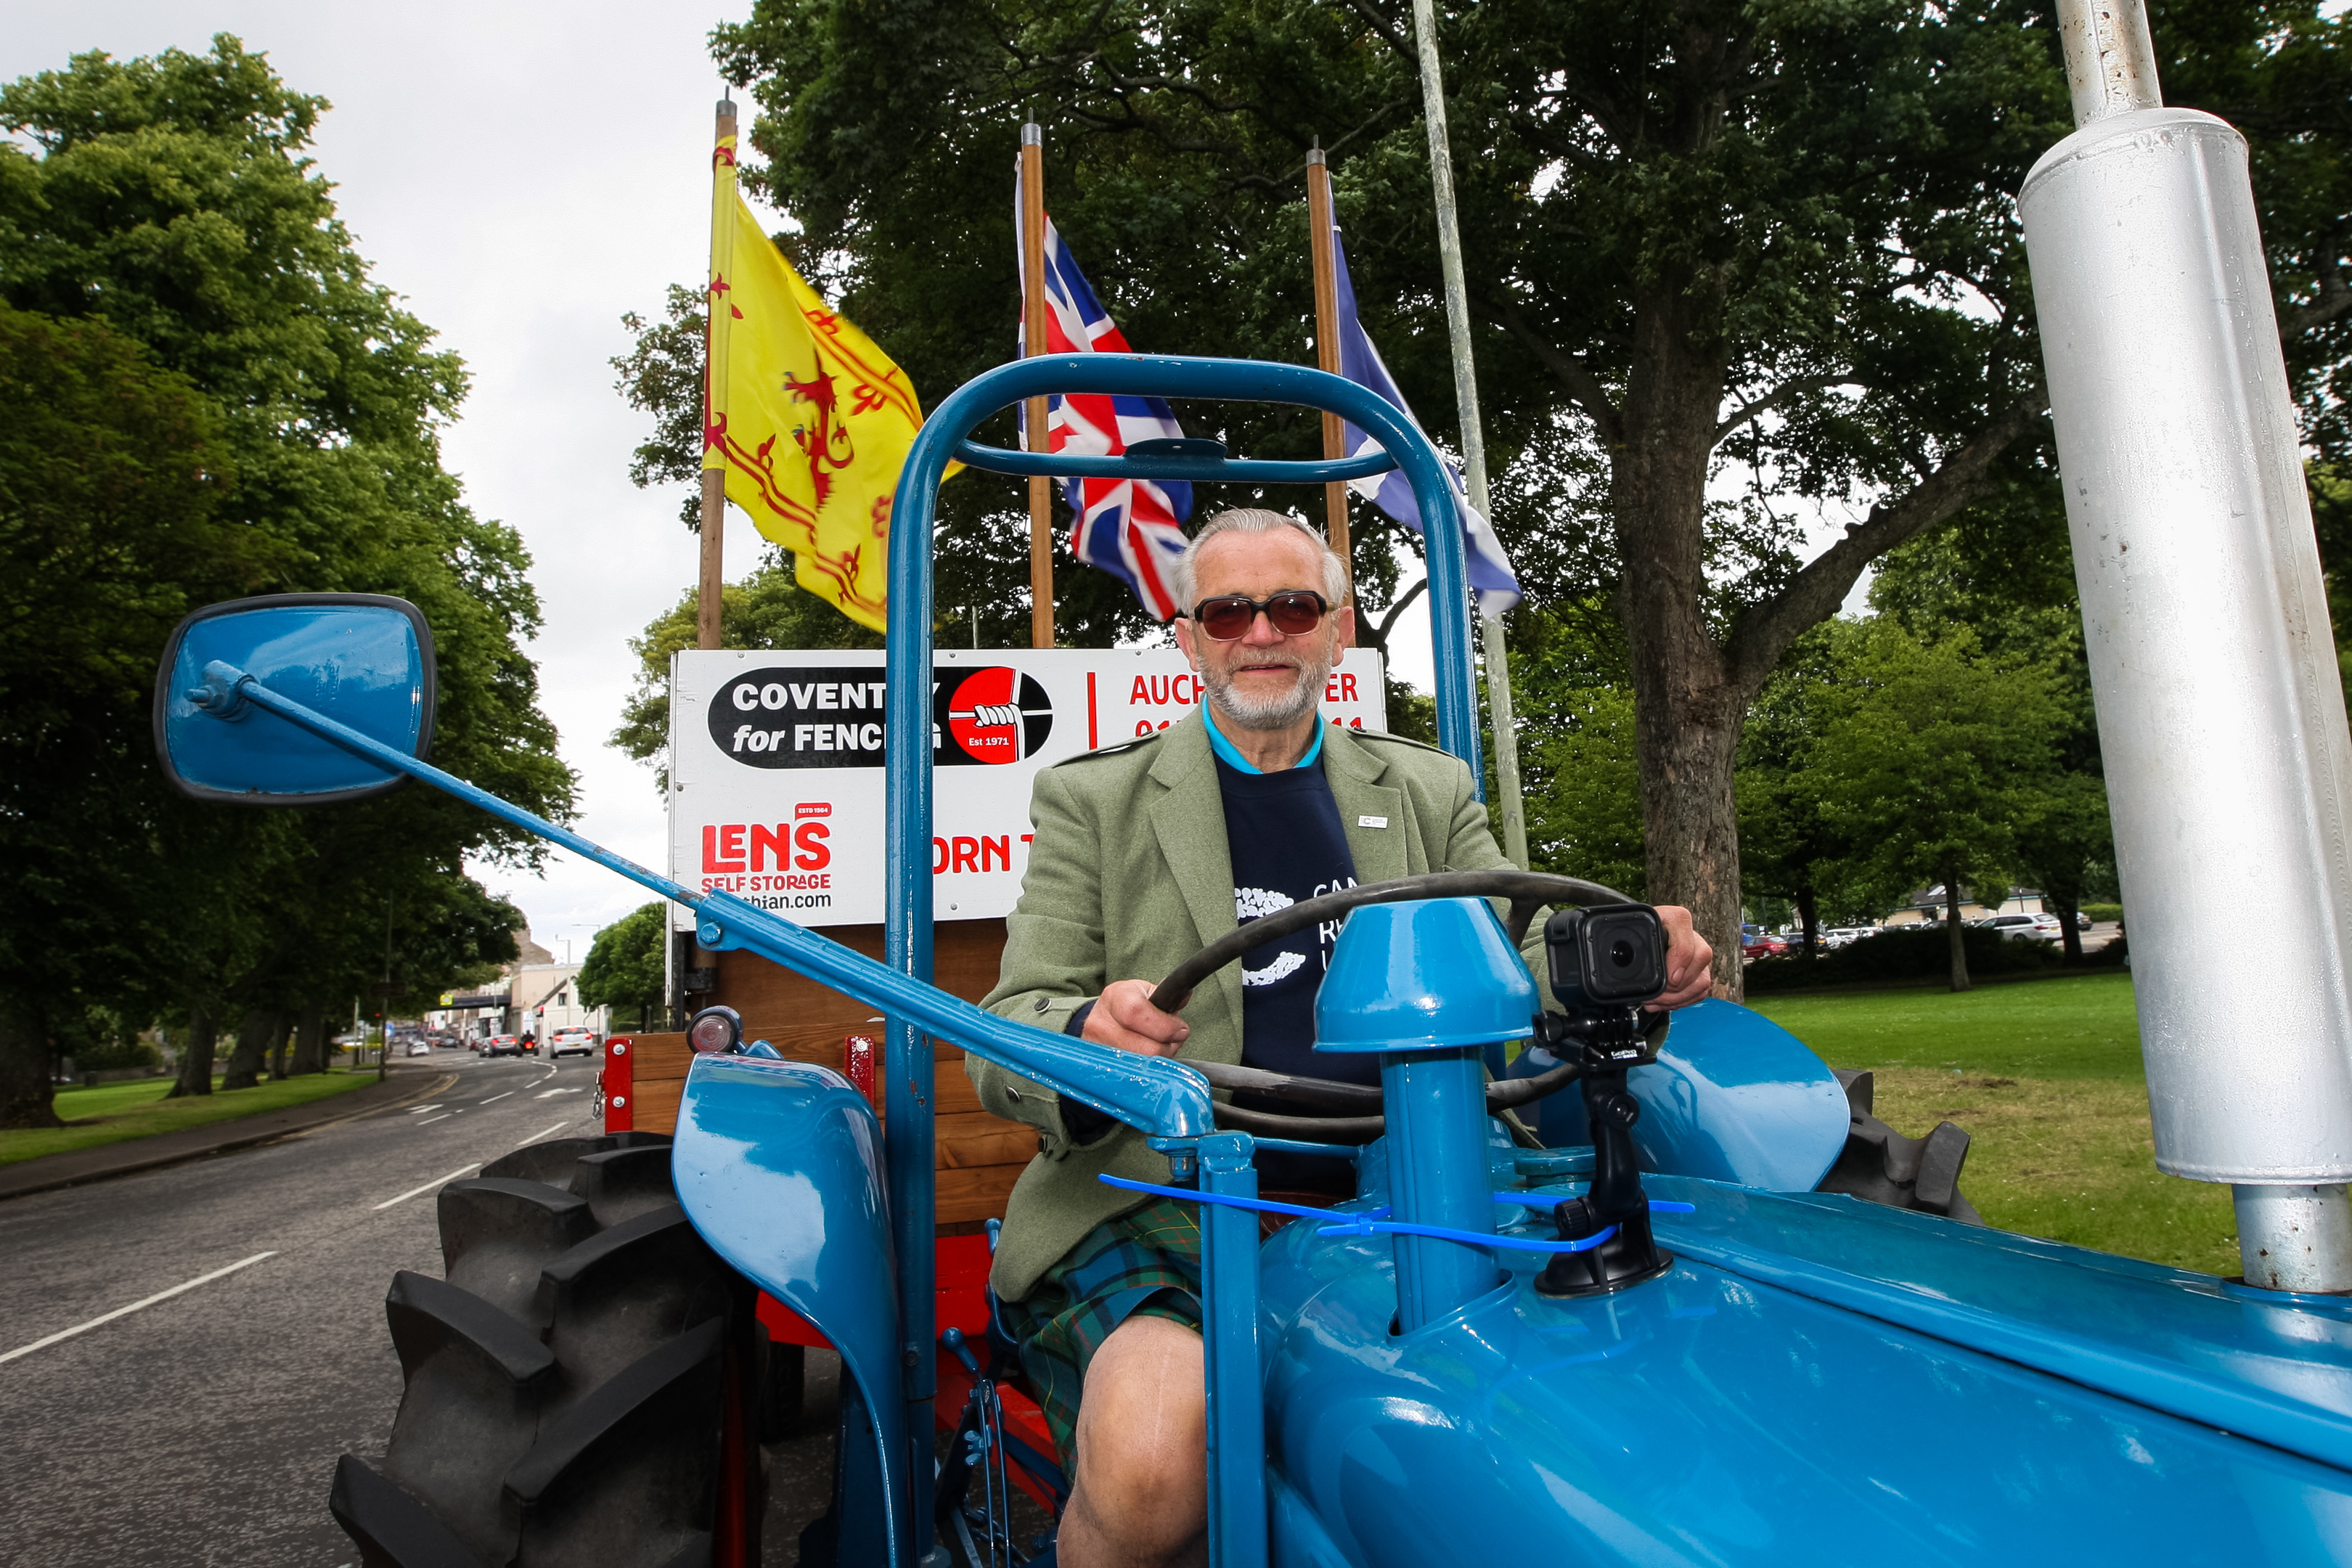 David has previously driven from John O' Groats to Land's End in the tractor.